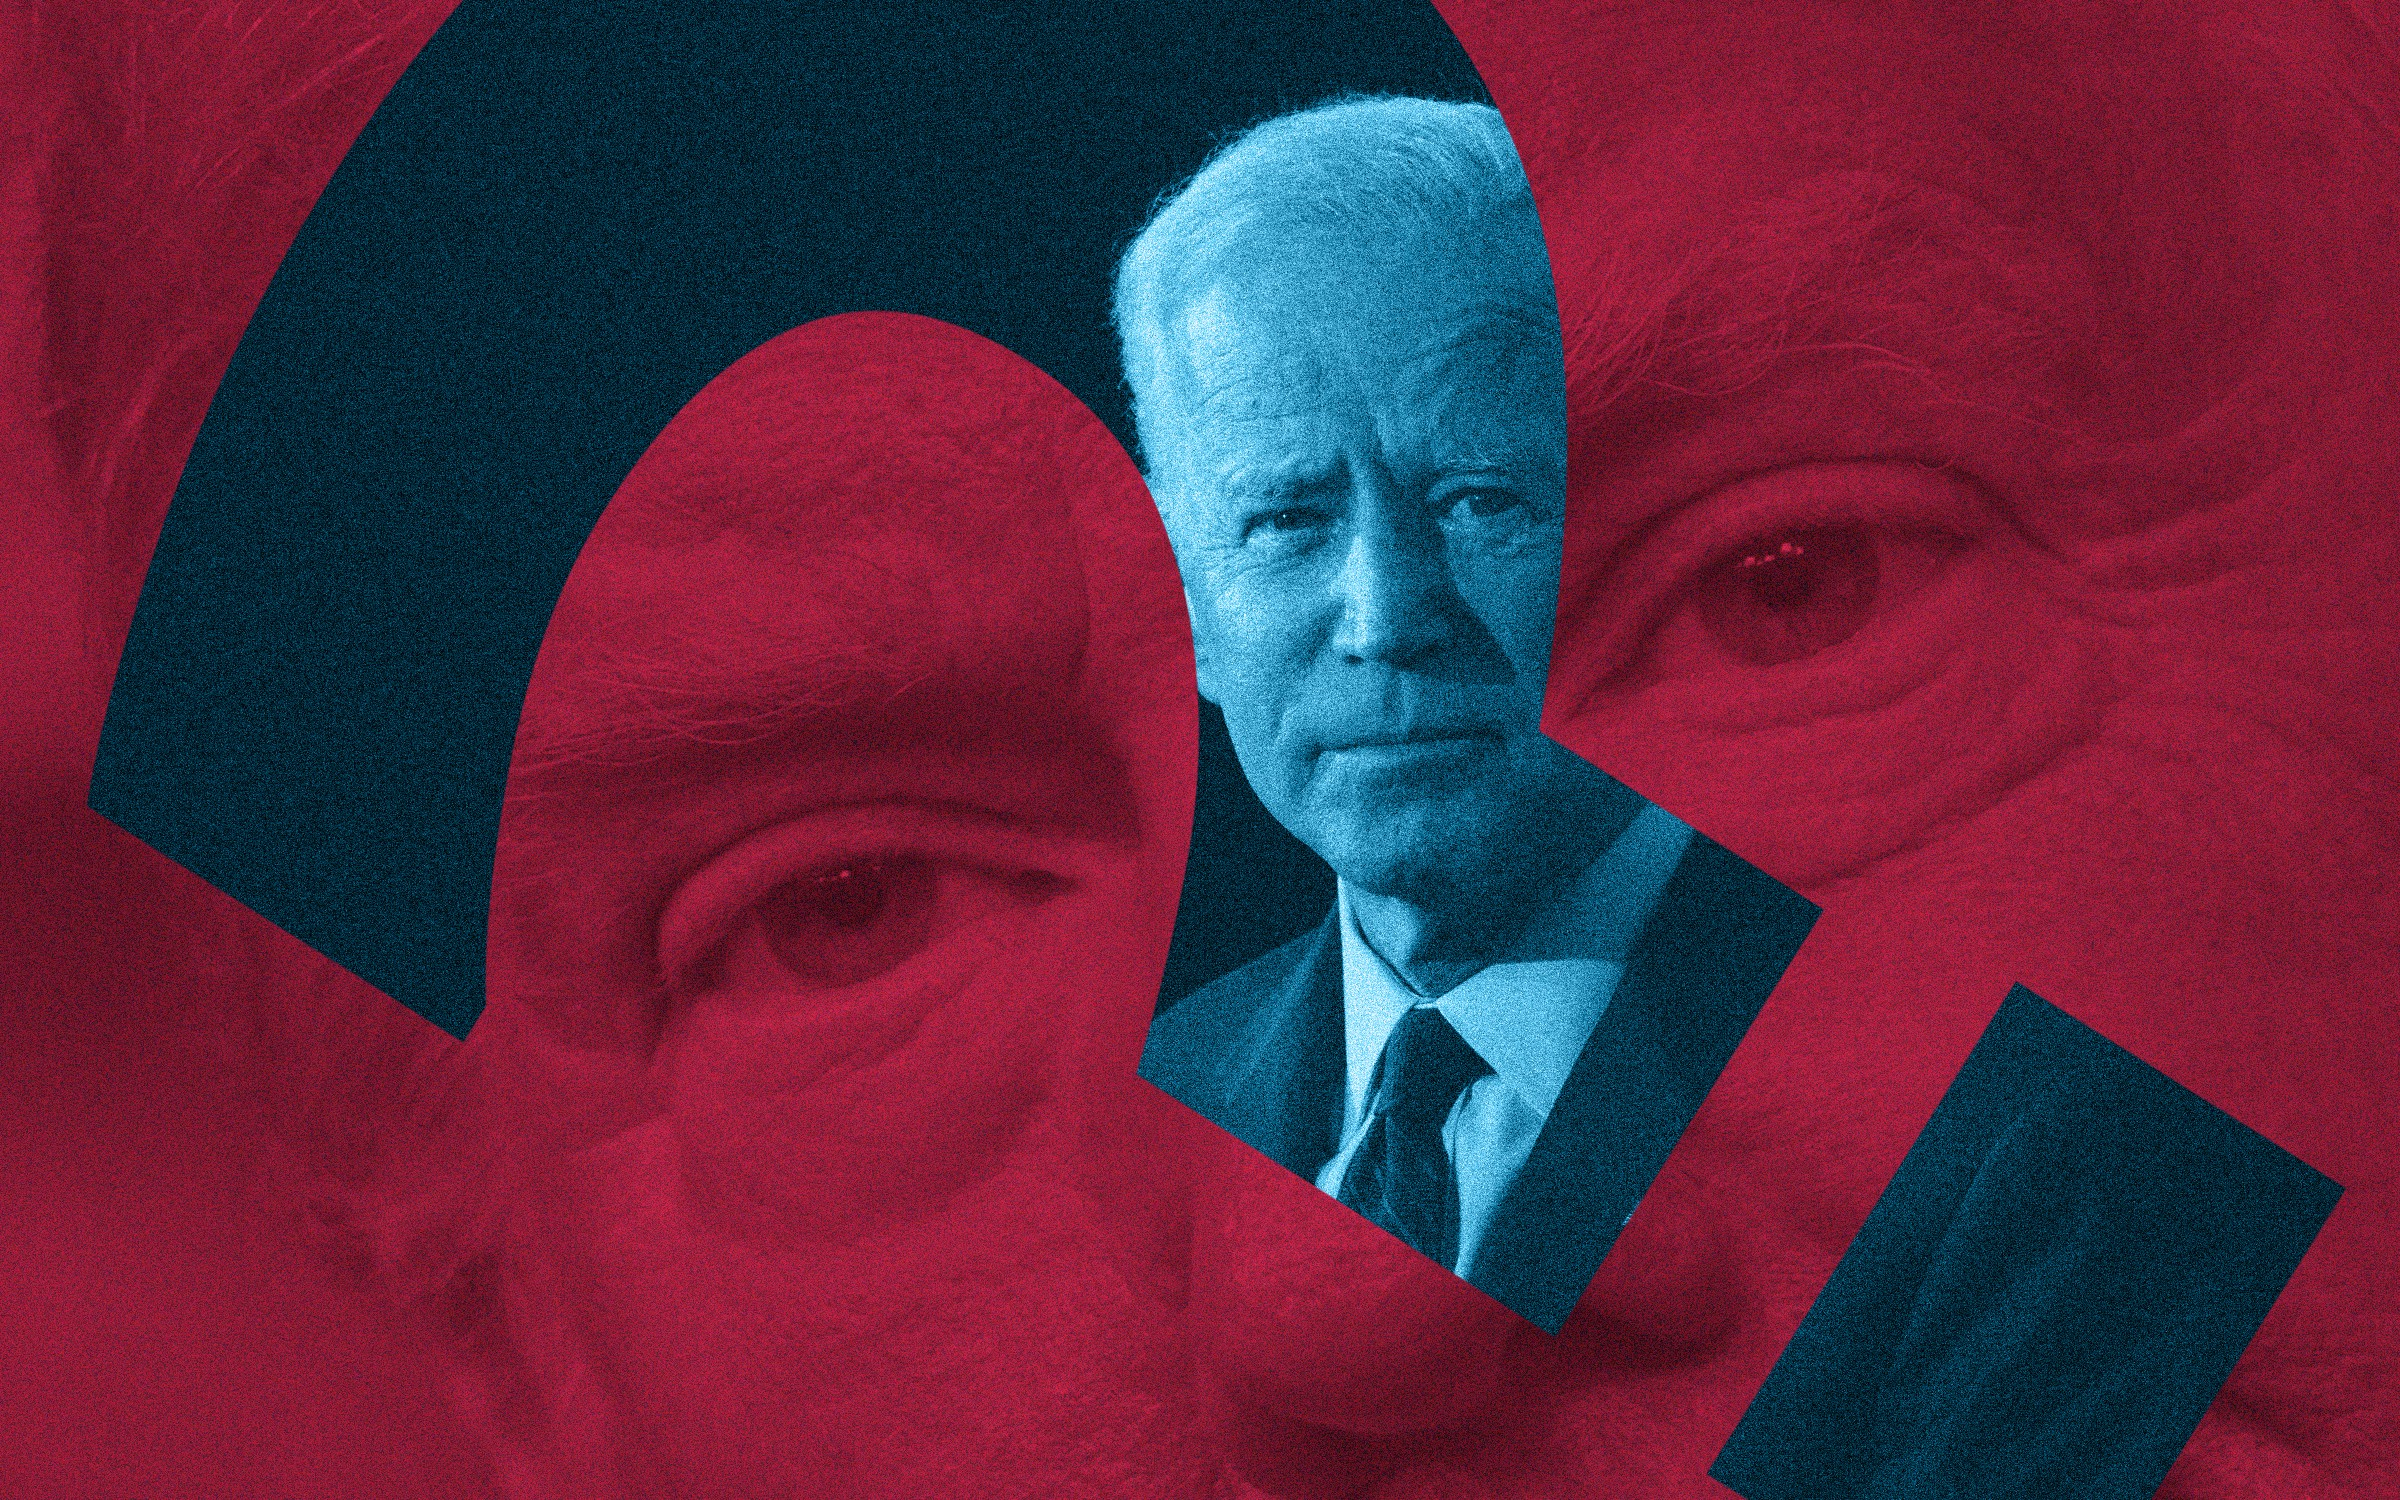 Red background close-up of Trump's face against a question mark-shaped blue cut out of Joe Biden in foreground.